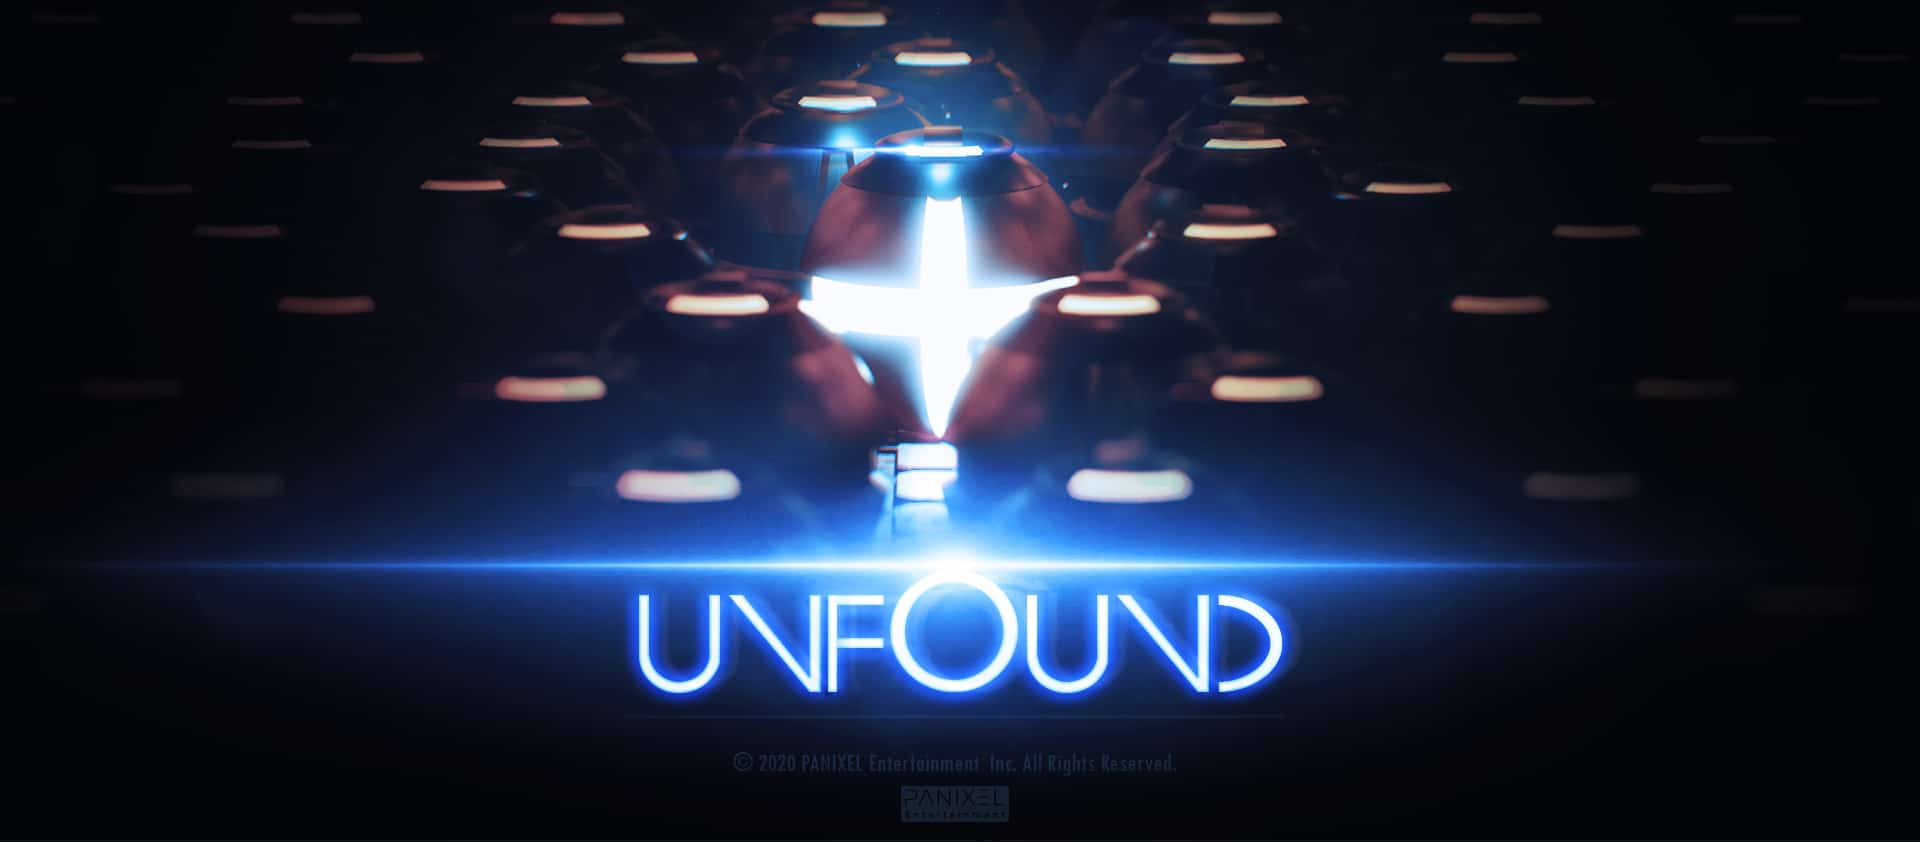 UnFound - Story driven tactical stealth game from Panixel